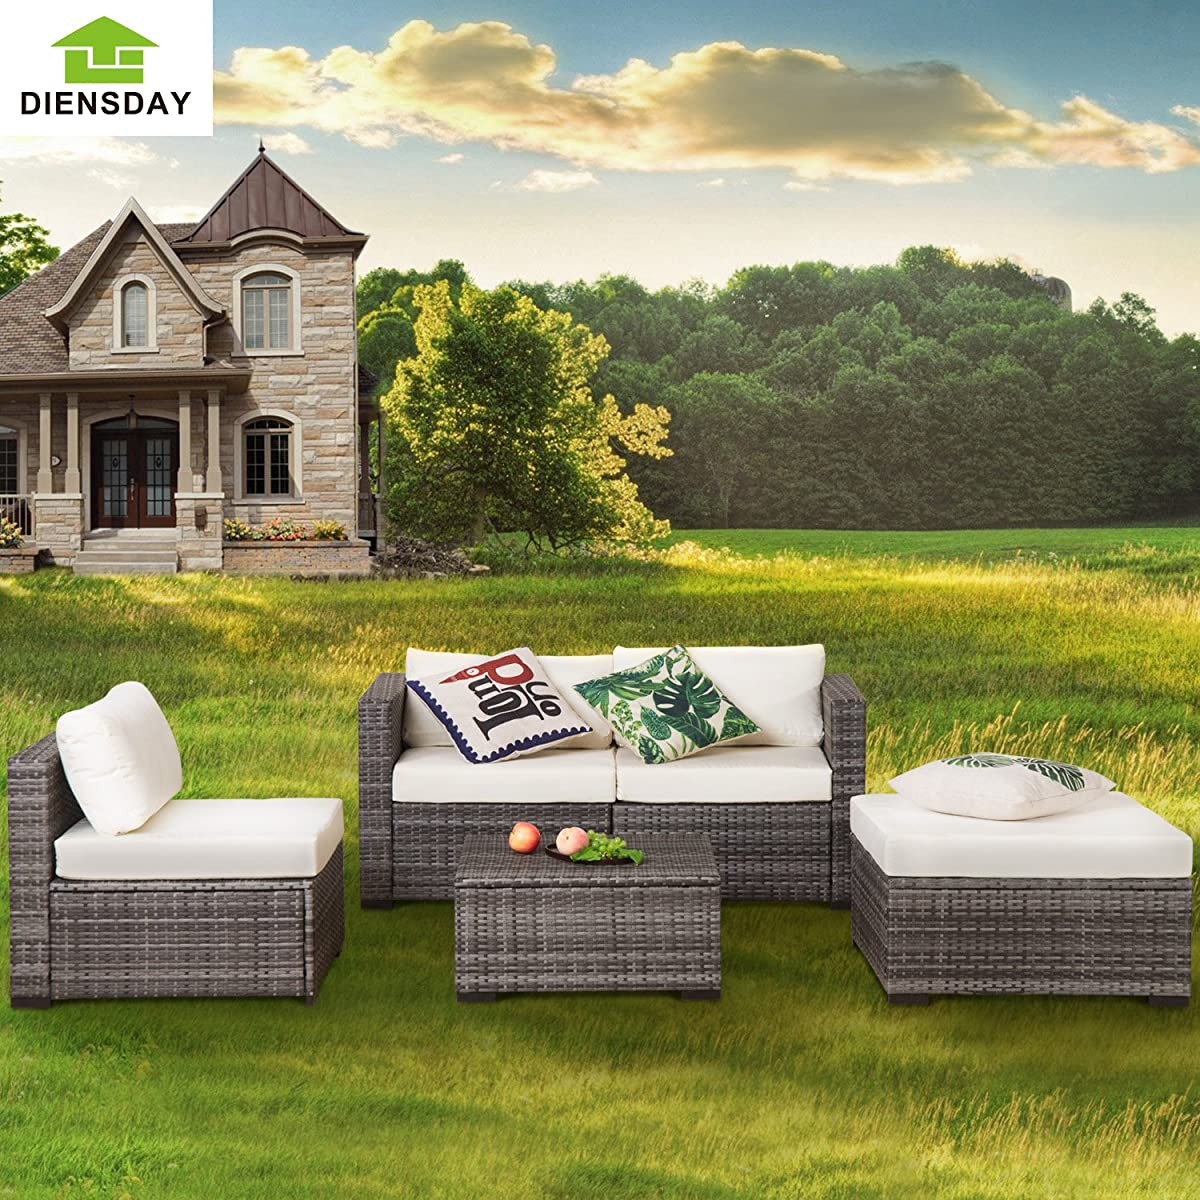 Diensday Outdoor Seating Set 5 Piece Patio Wicker Furniture Set Outdoor Garden Conversation Set Sectional Sofa with Water-Resistant Cushions(Mixed Grey)